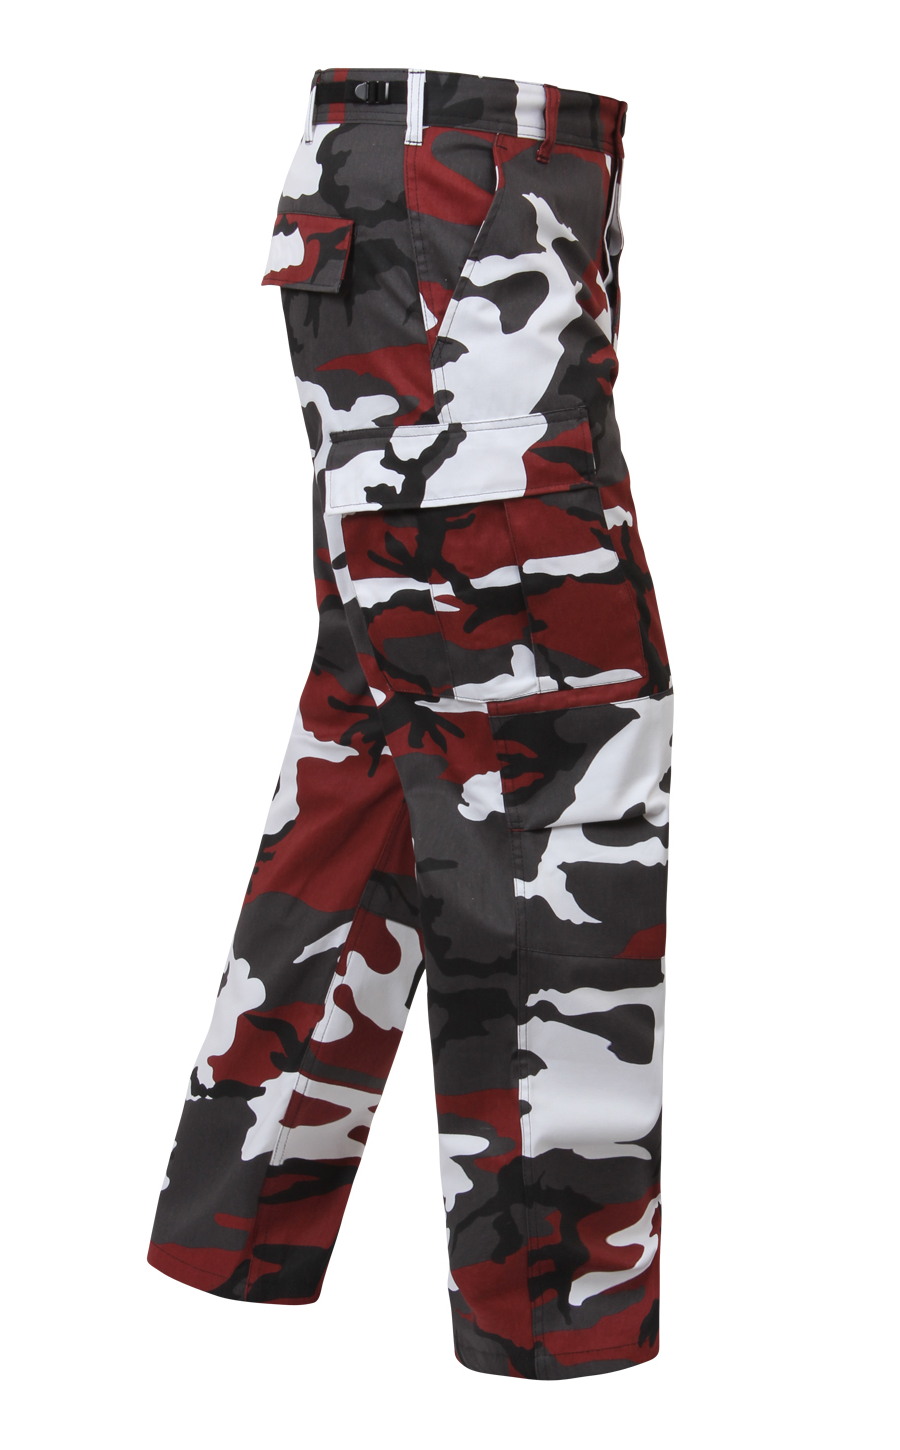 Ultra Force Red Camouflage B.D.U. Pants by Rothco